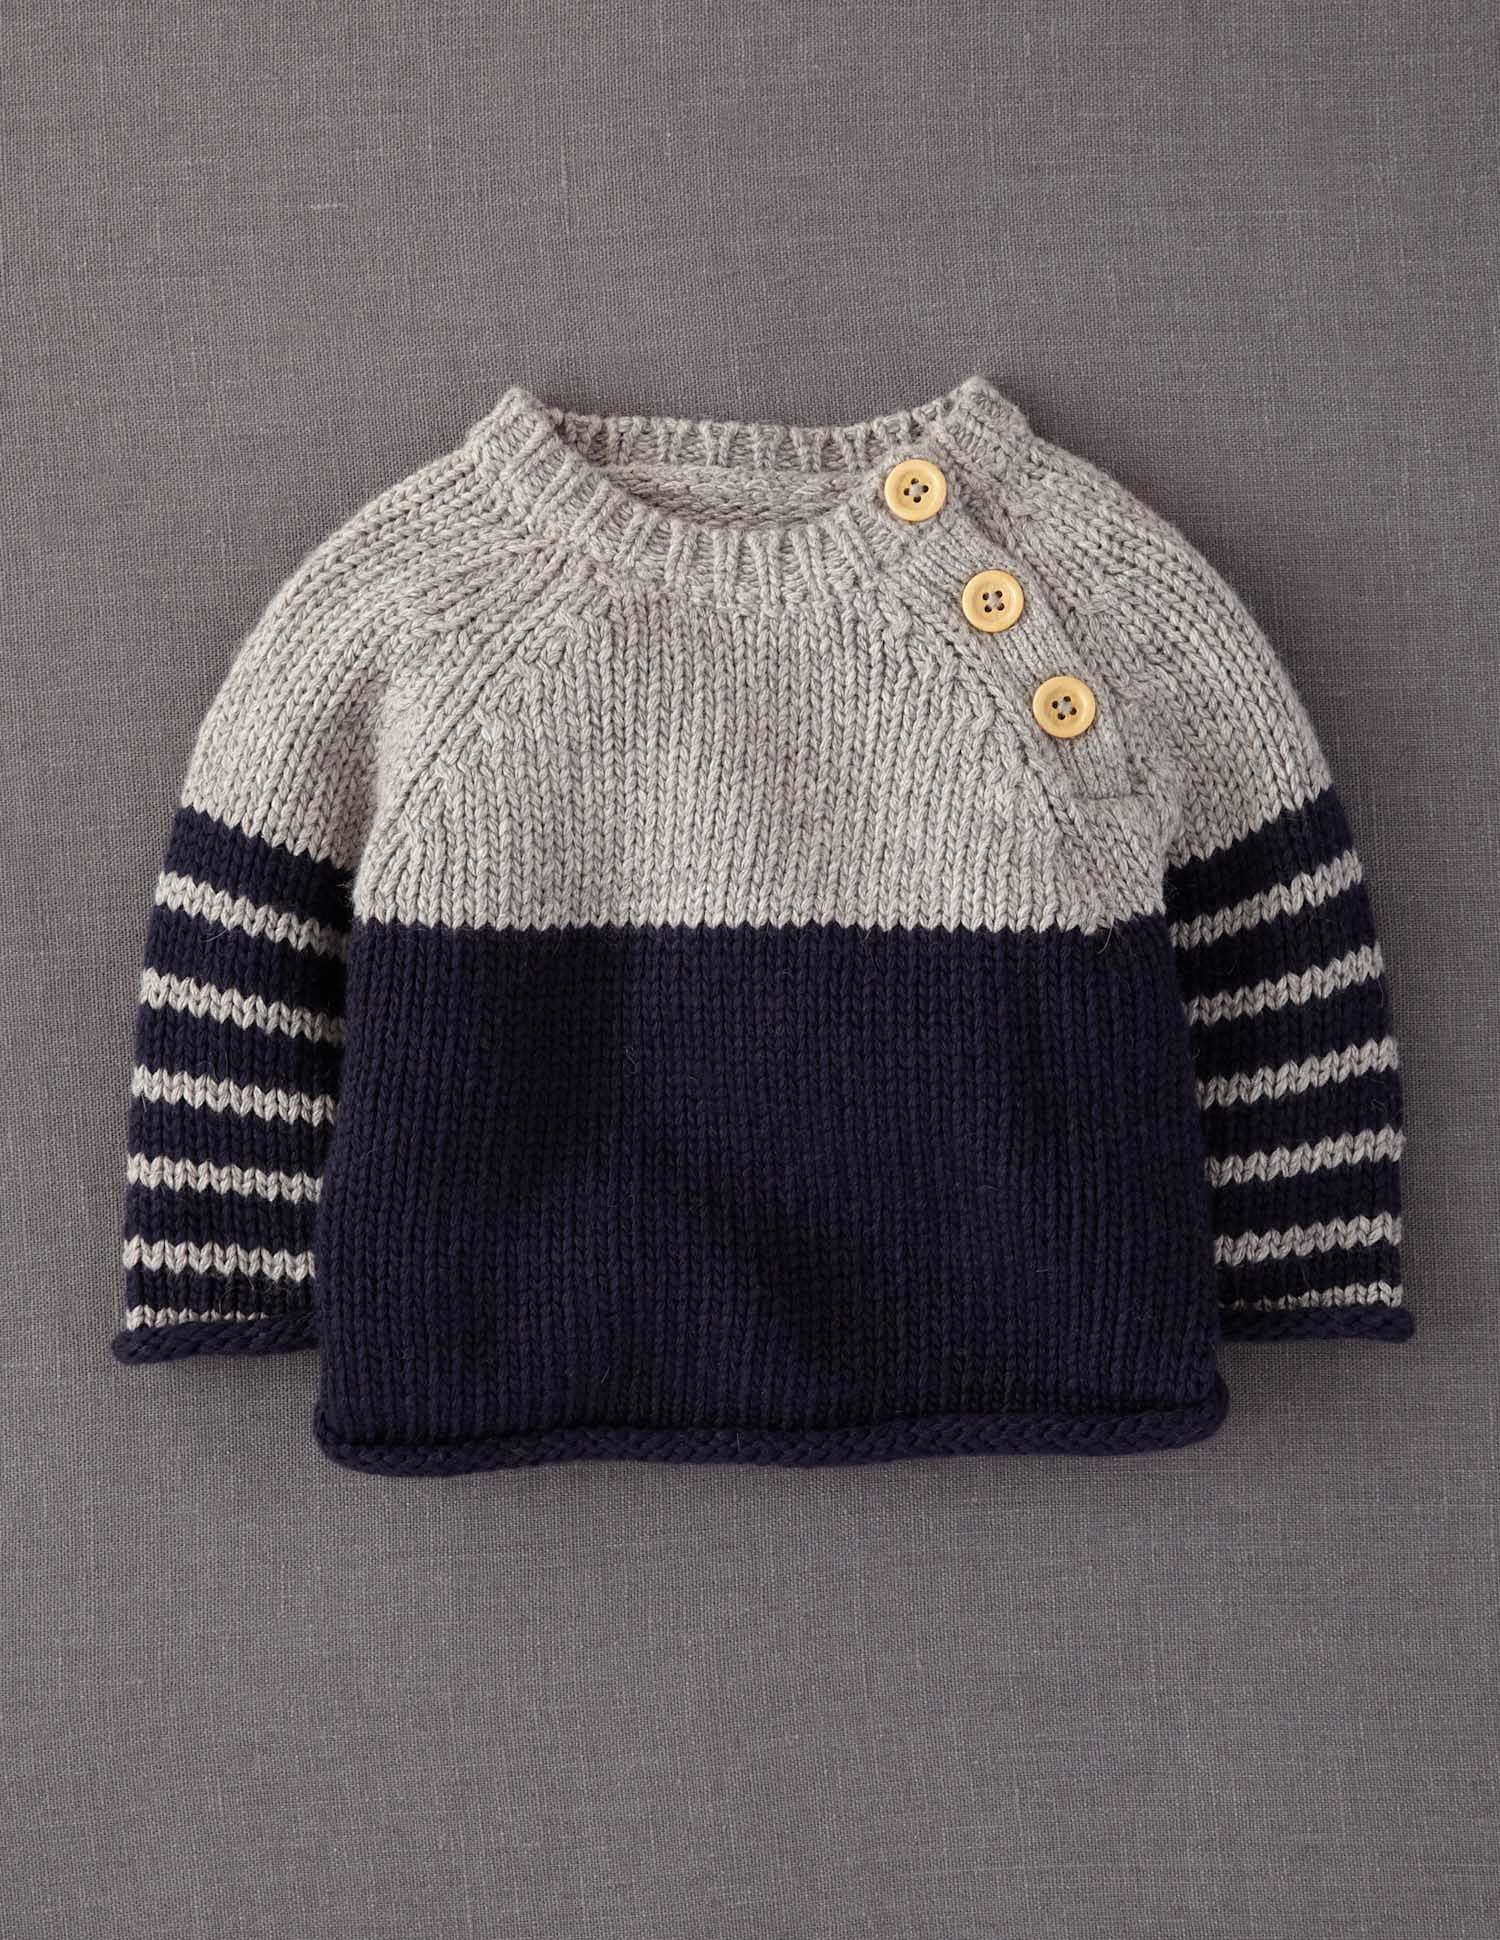 acd6c903399f Winter knit pullover sweater